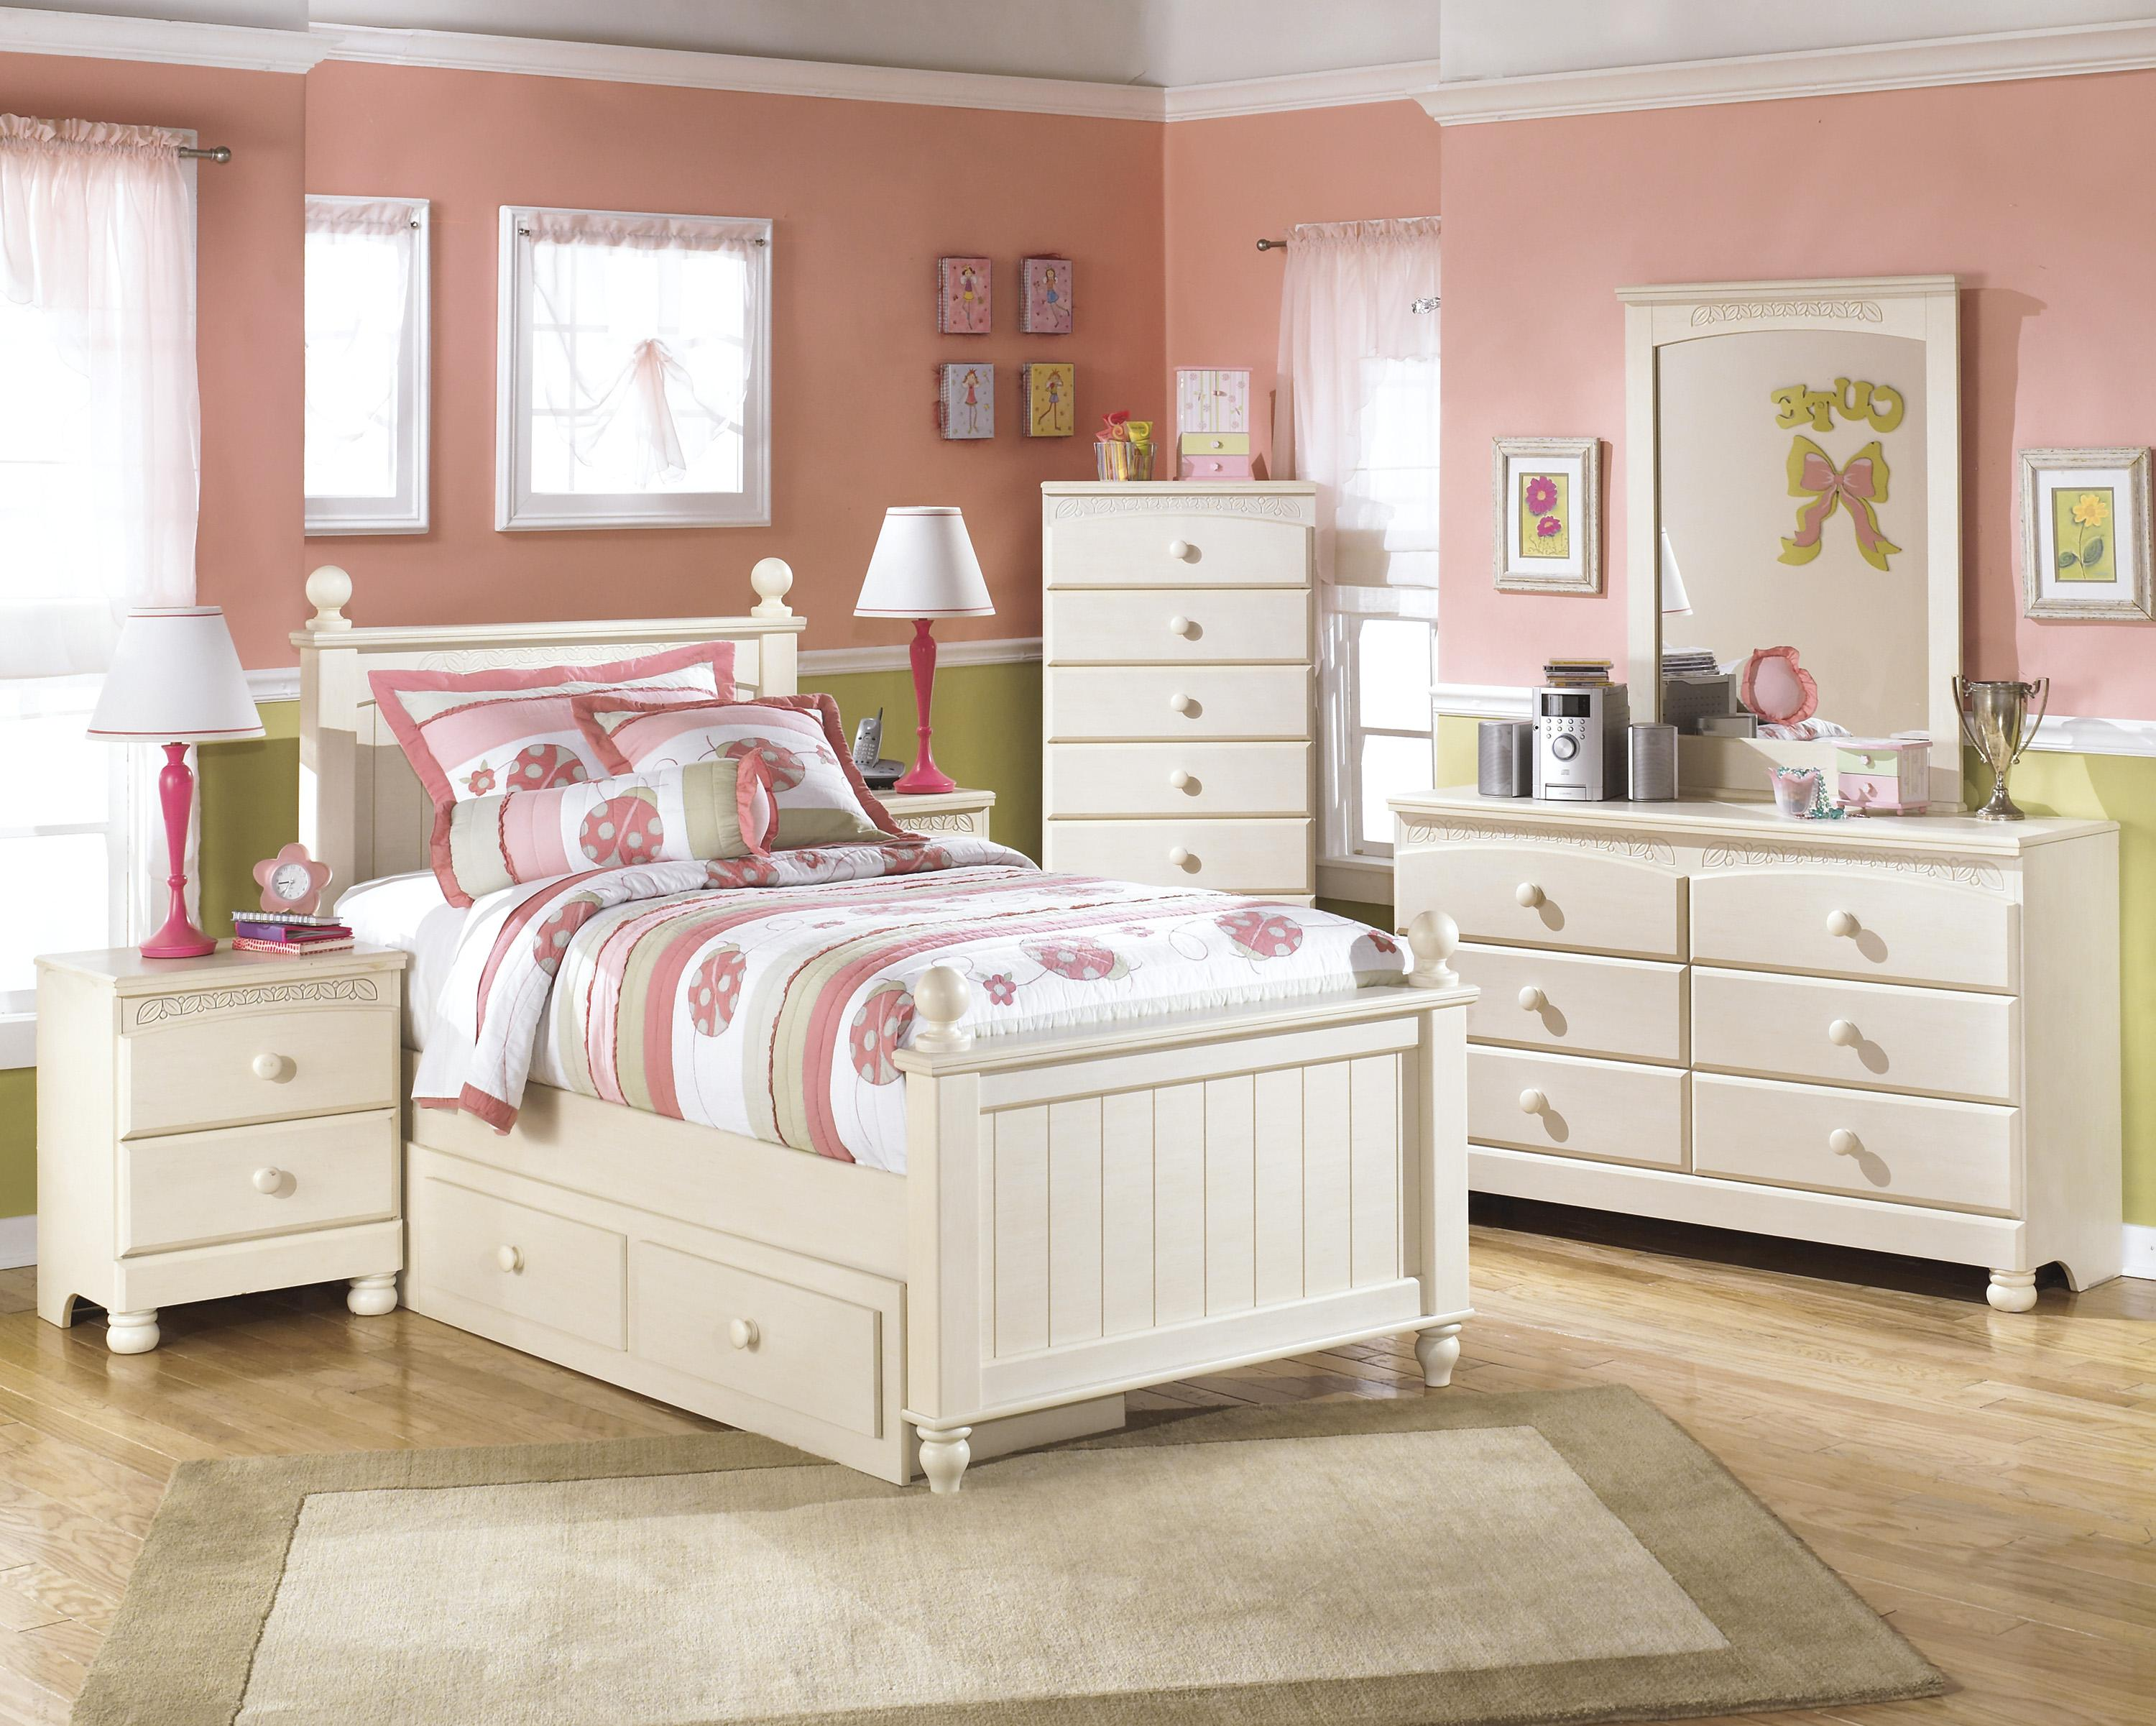 Signature Design by Ashley Cottage Retreat Twin Bedroom Group - Item Number: B213 T Bedroom Group 6